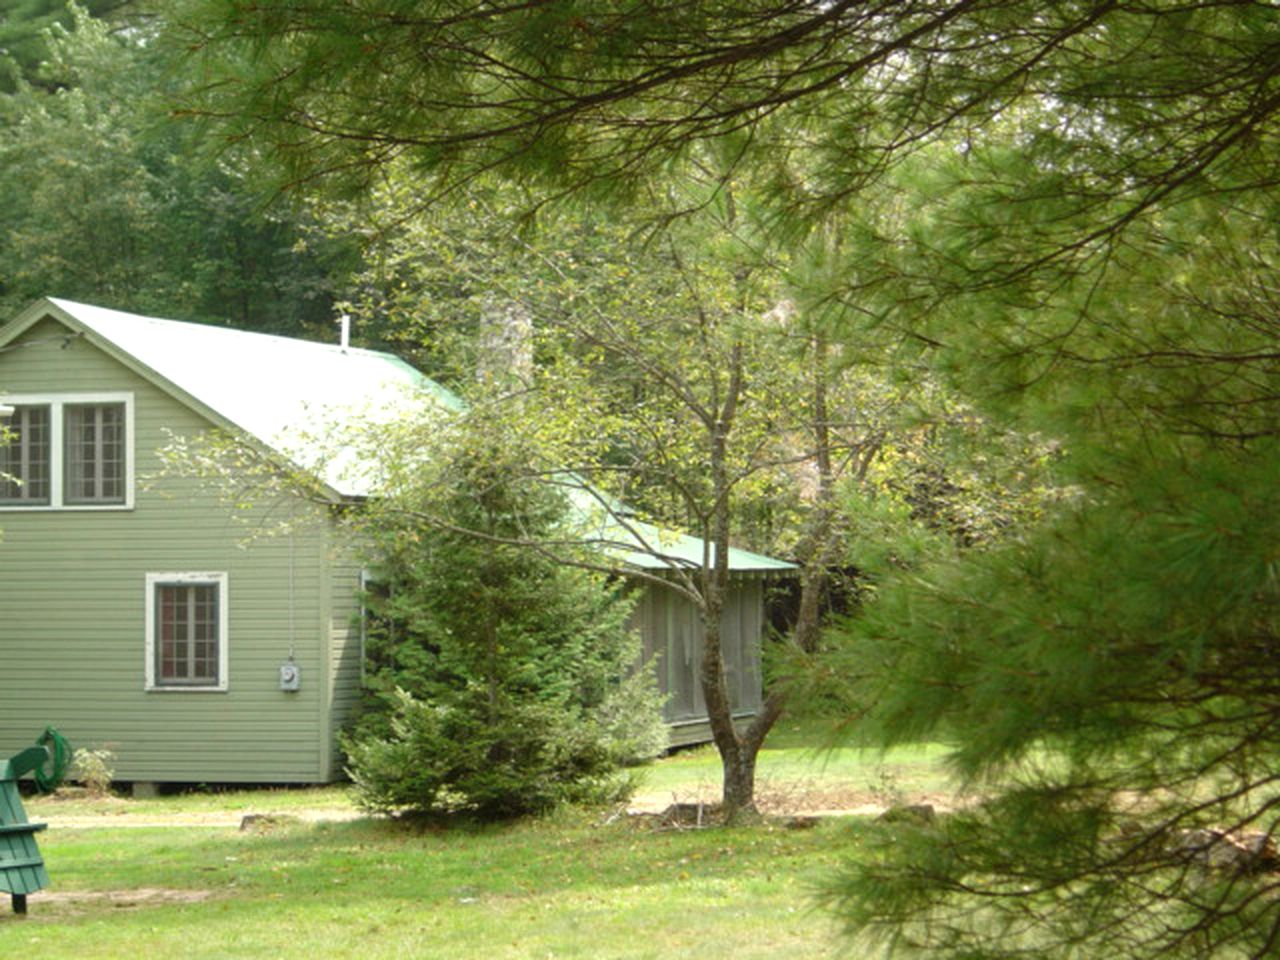 Cabins (Severance, New York, United States)